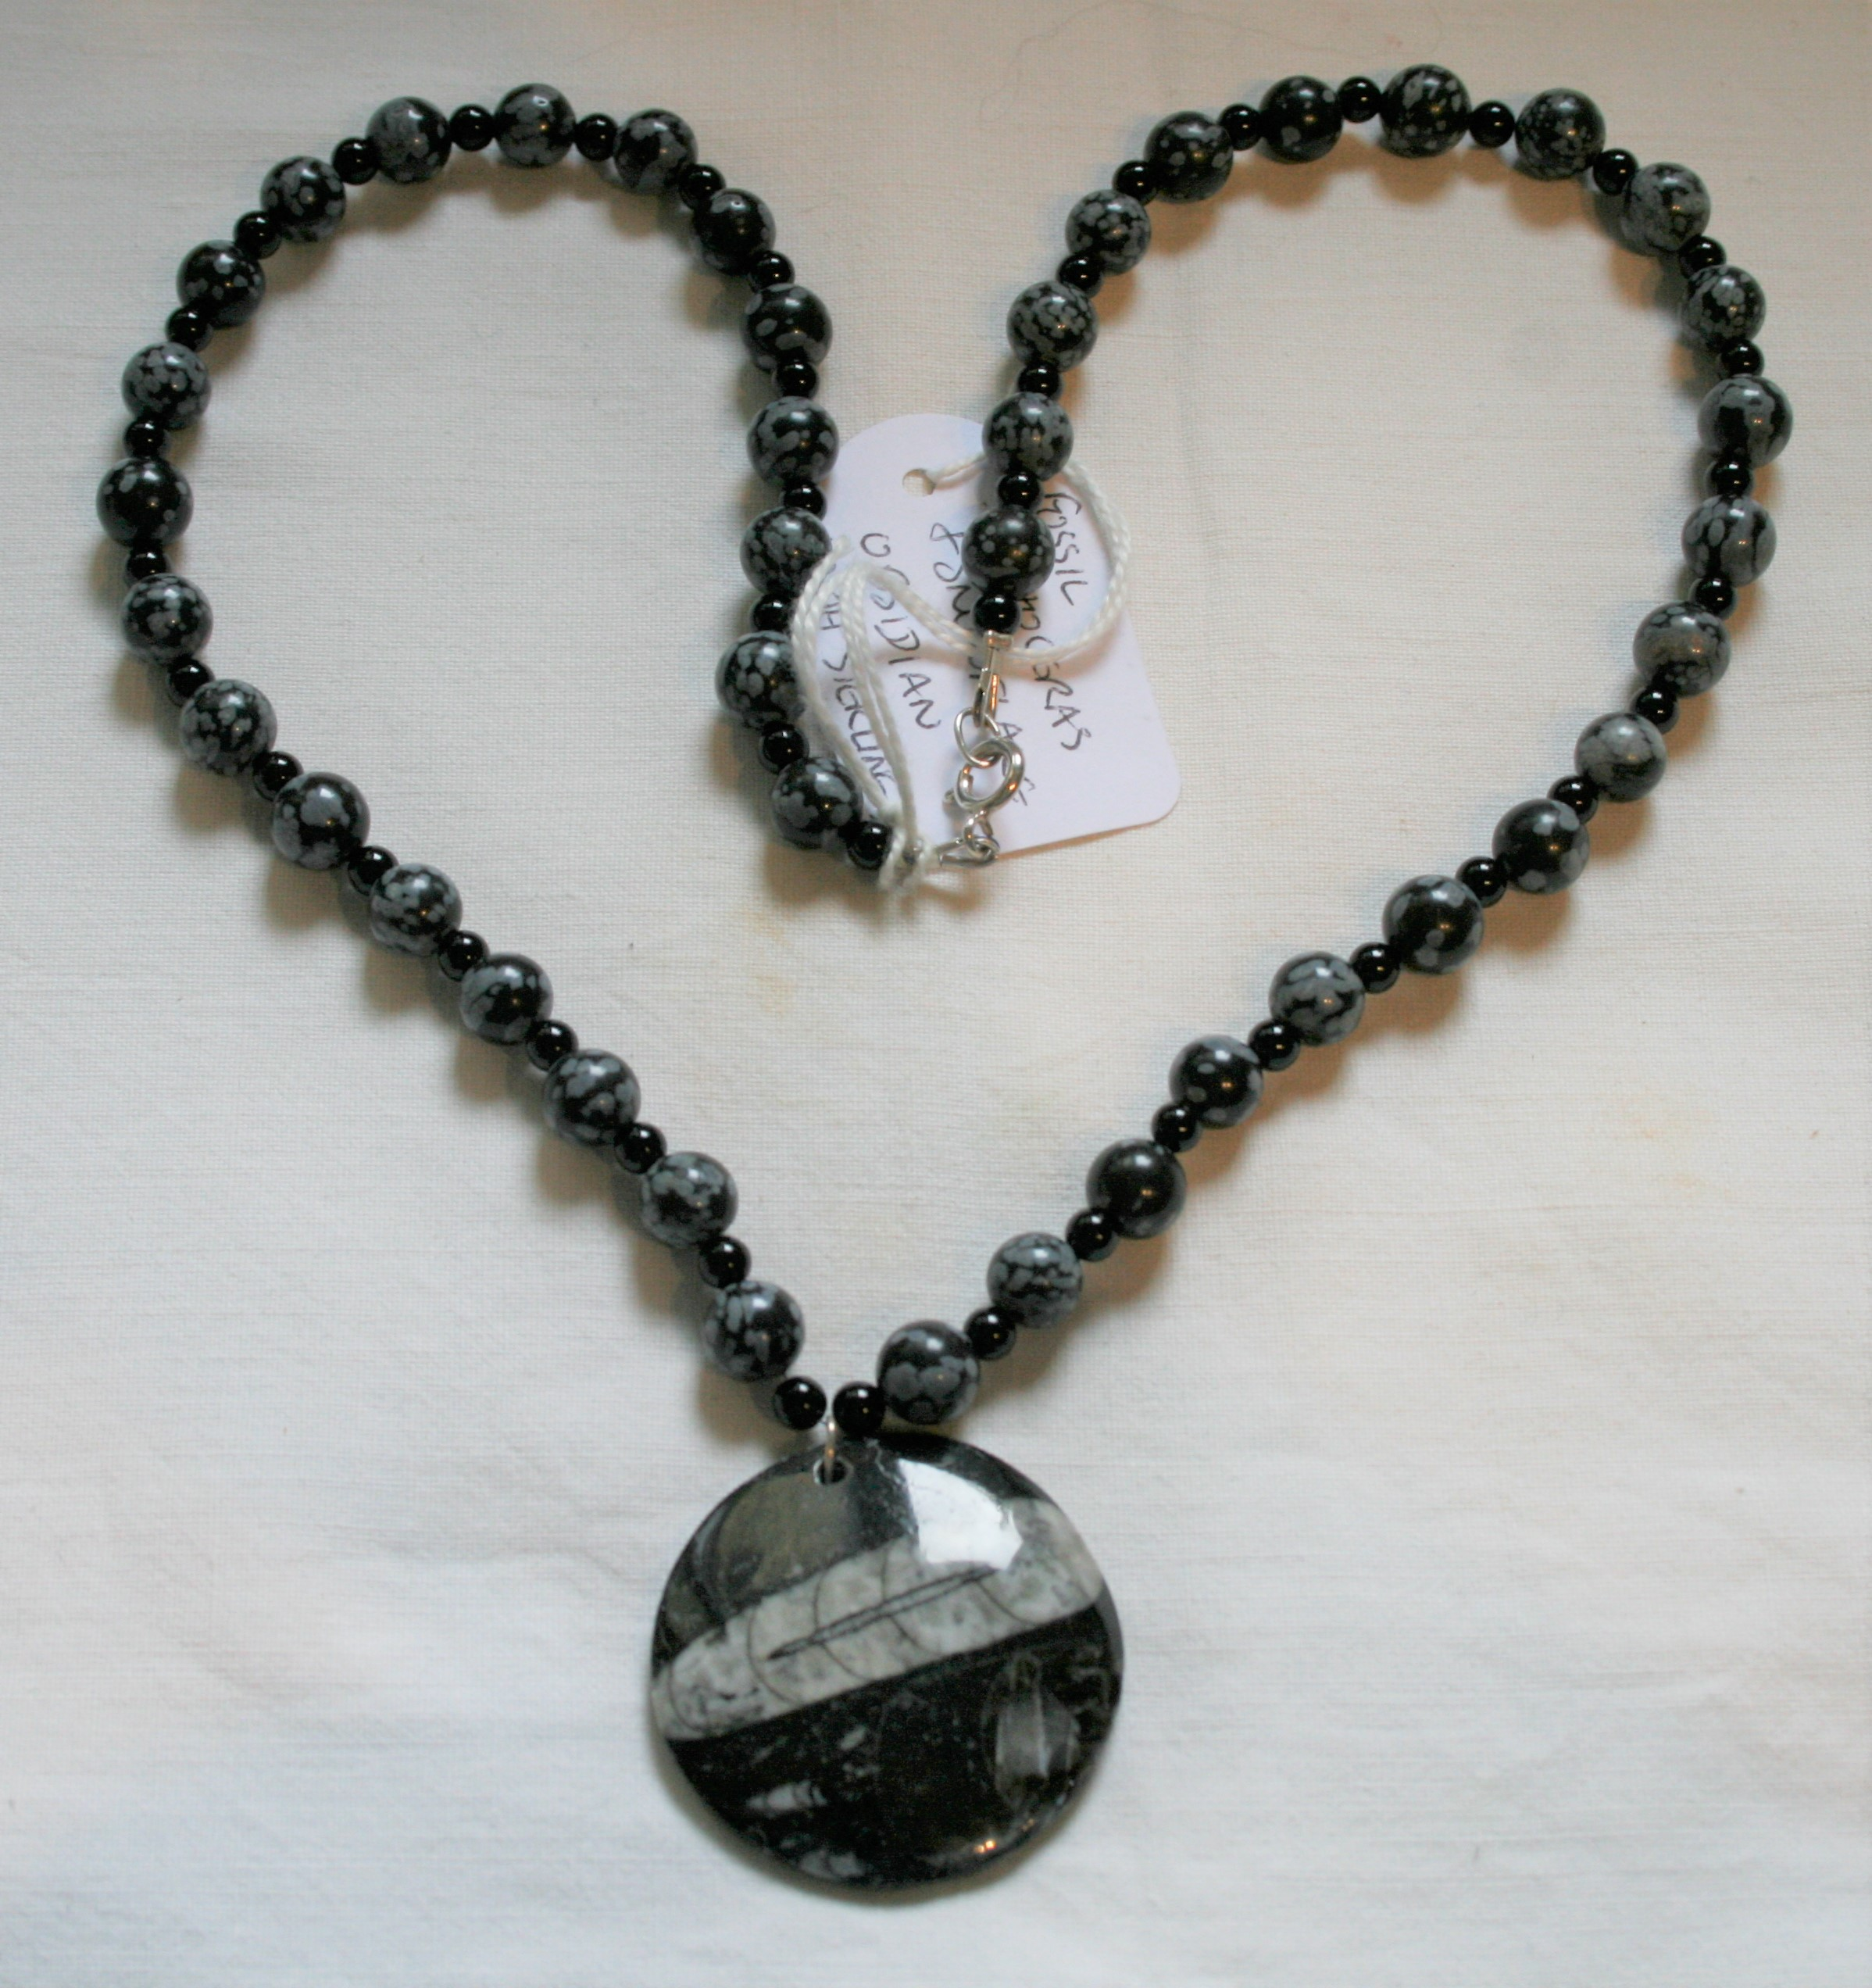 Snowflake Obsidian Necklace